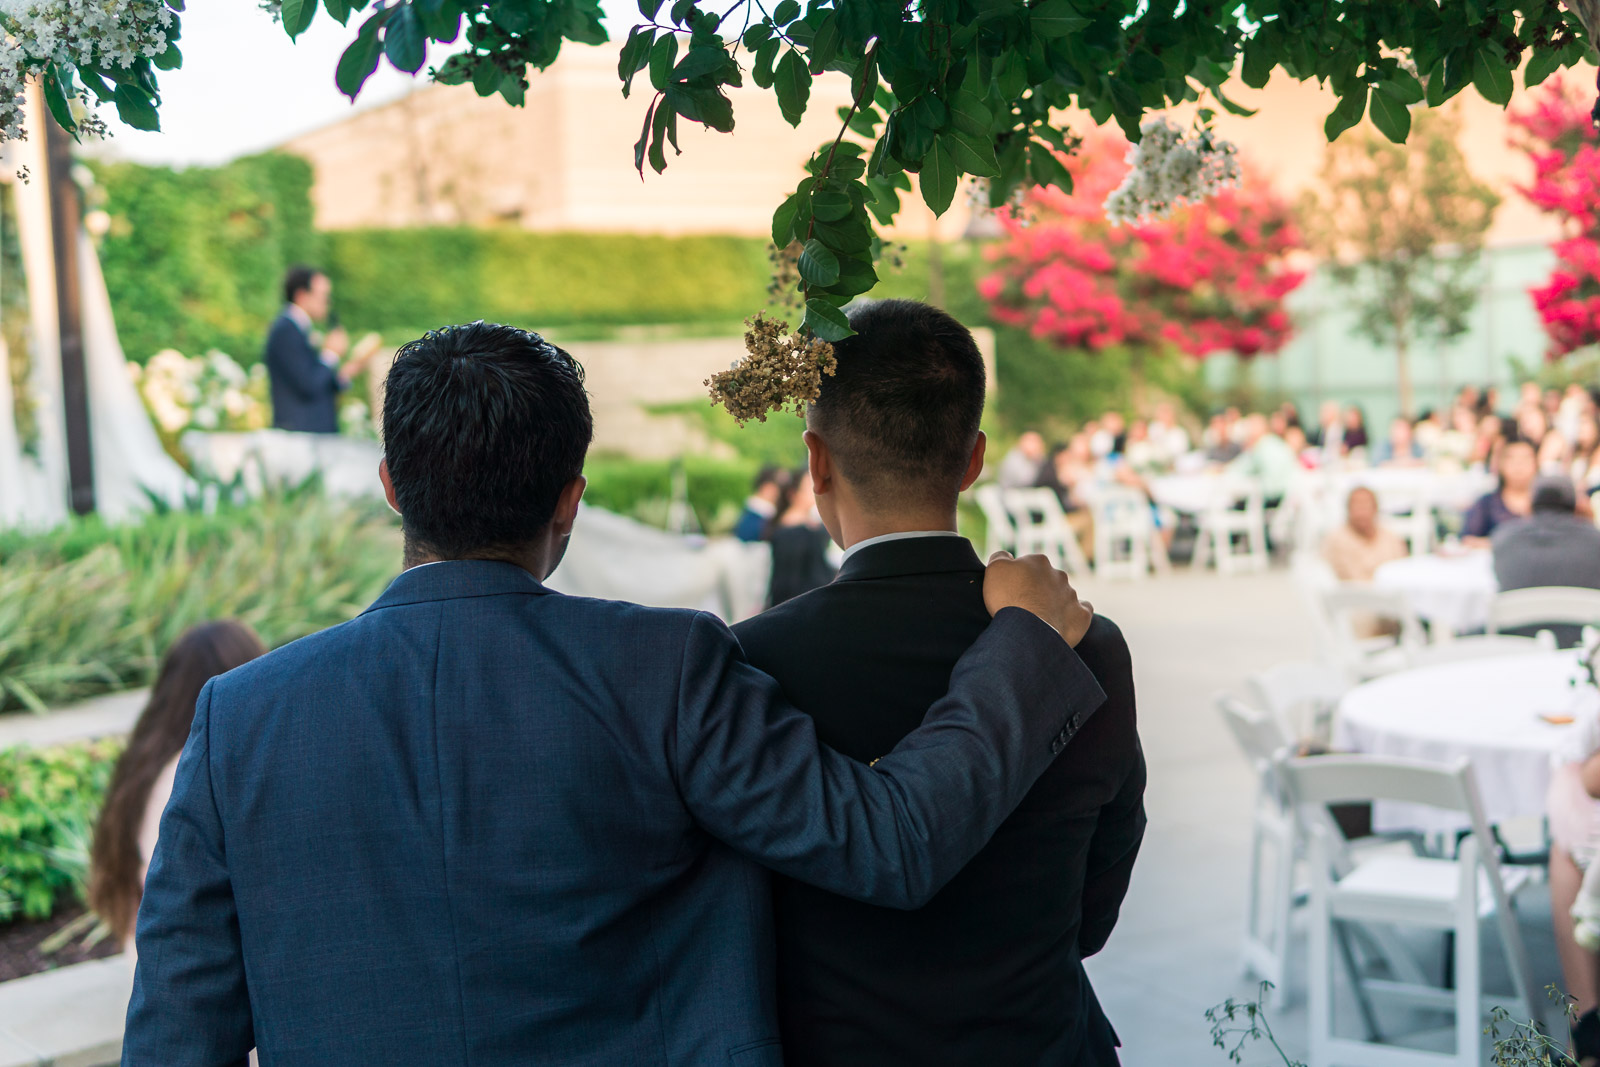 308_Angel-Brea-Orange-County_Joseph-Barber-Wedding-Photography.jpg